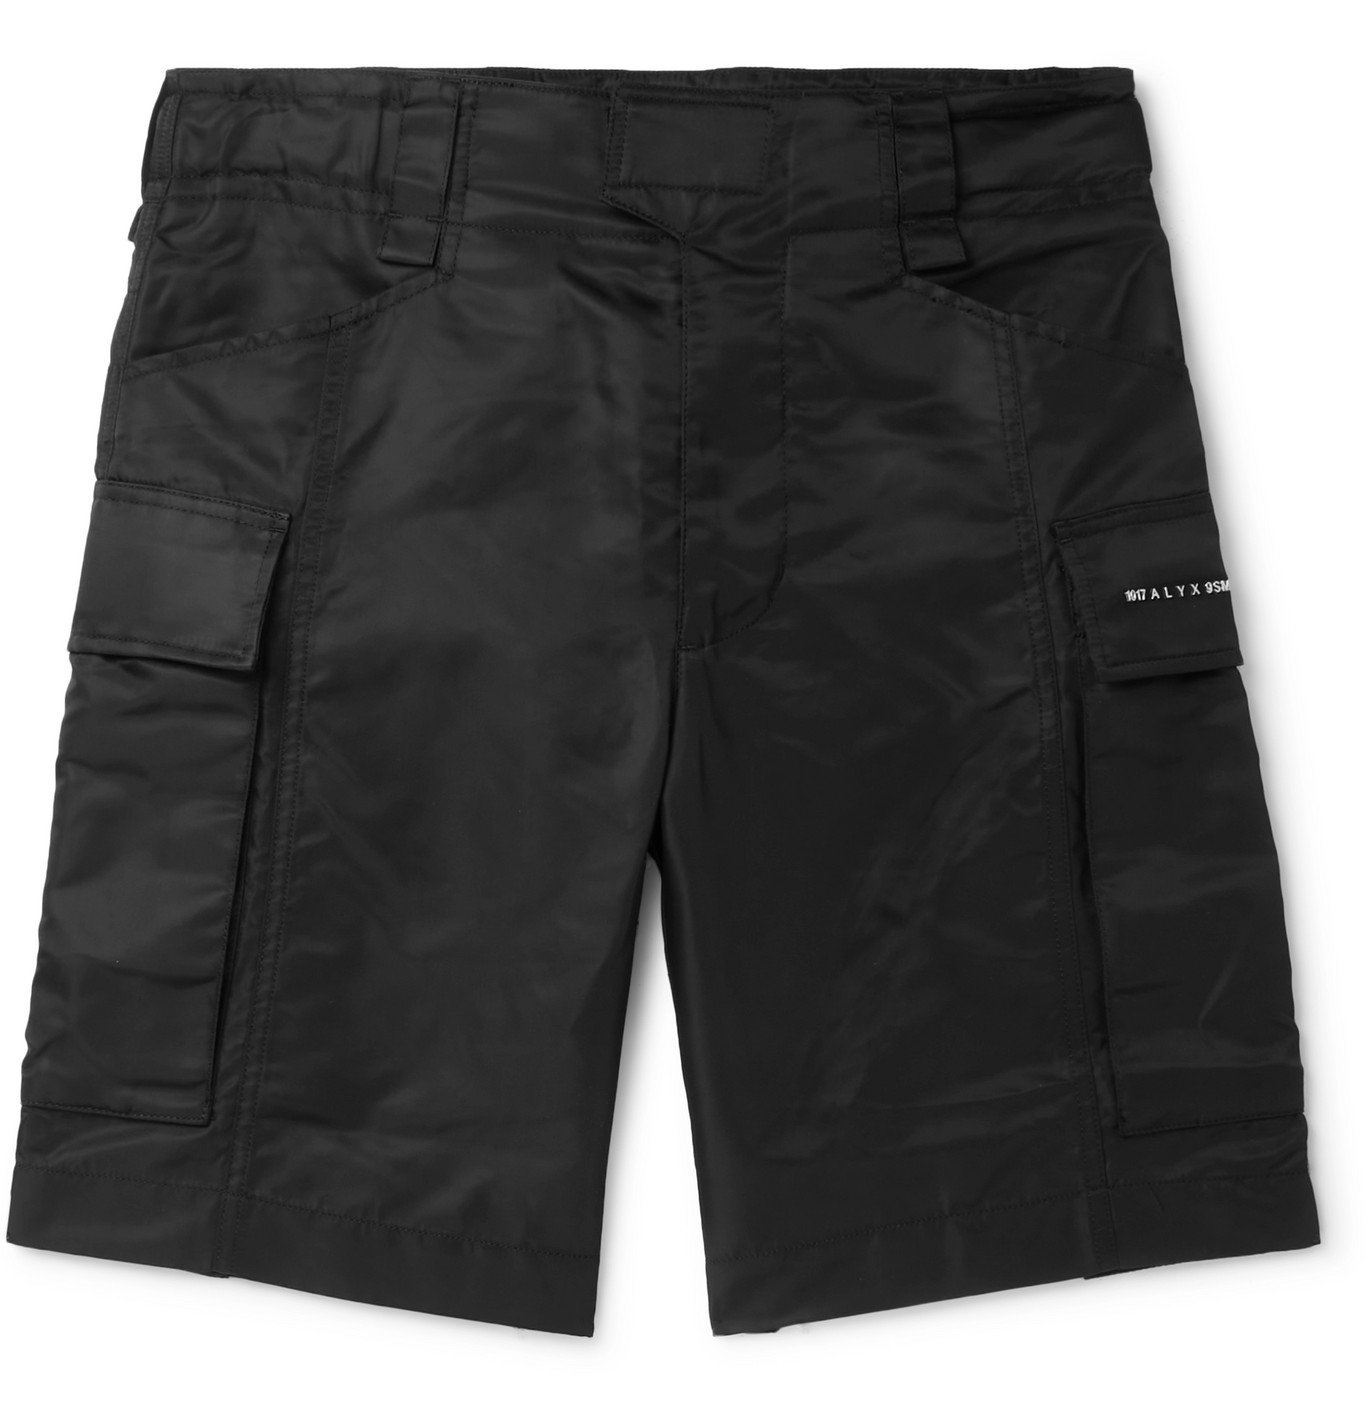 1017 ALYX 9SM - Recycled Nylon Cargo Shorts - Black